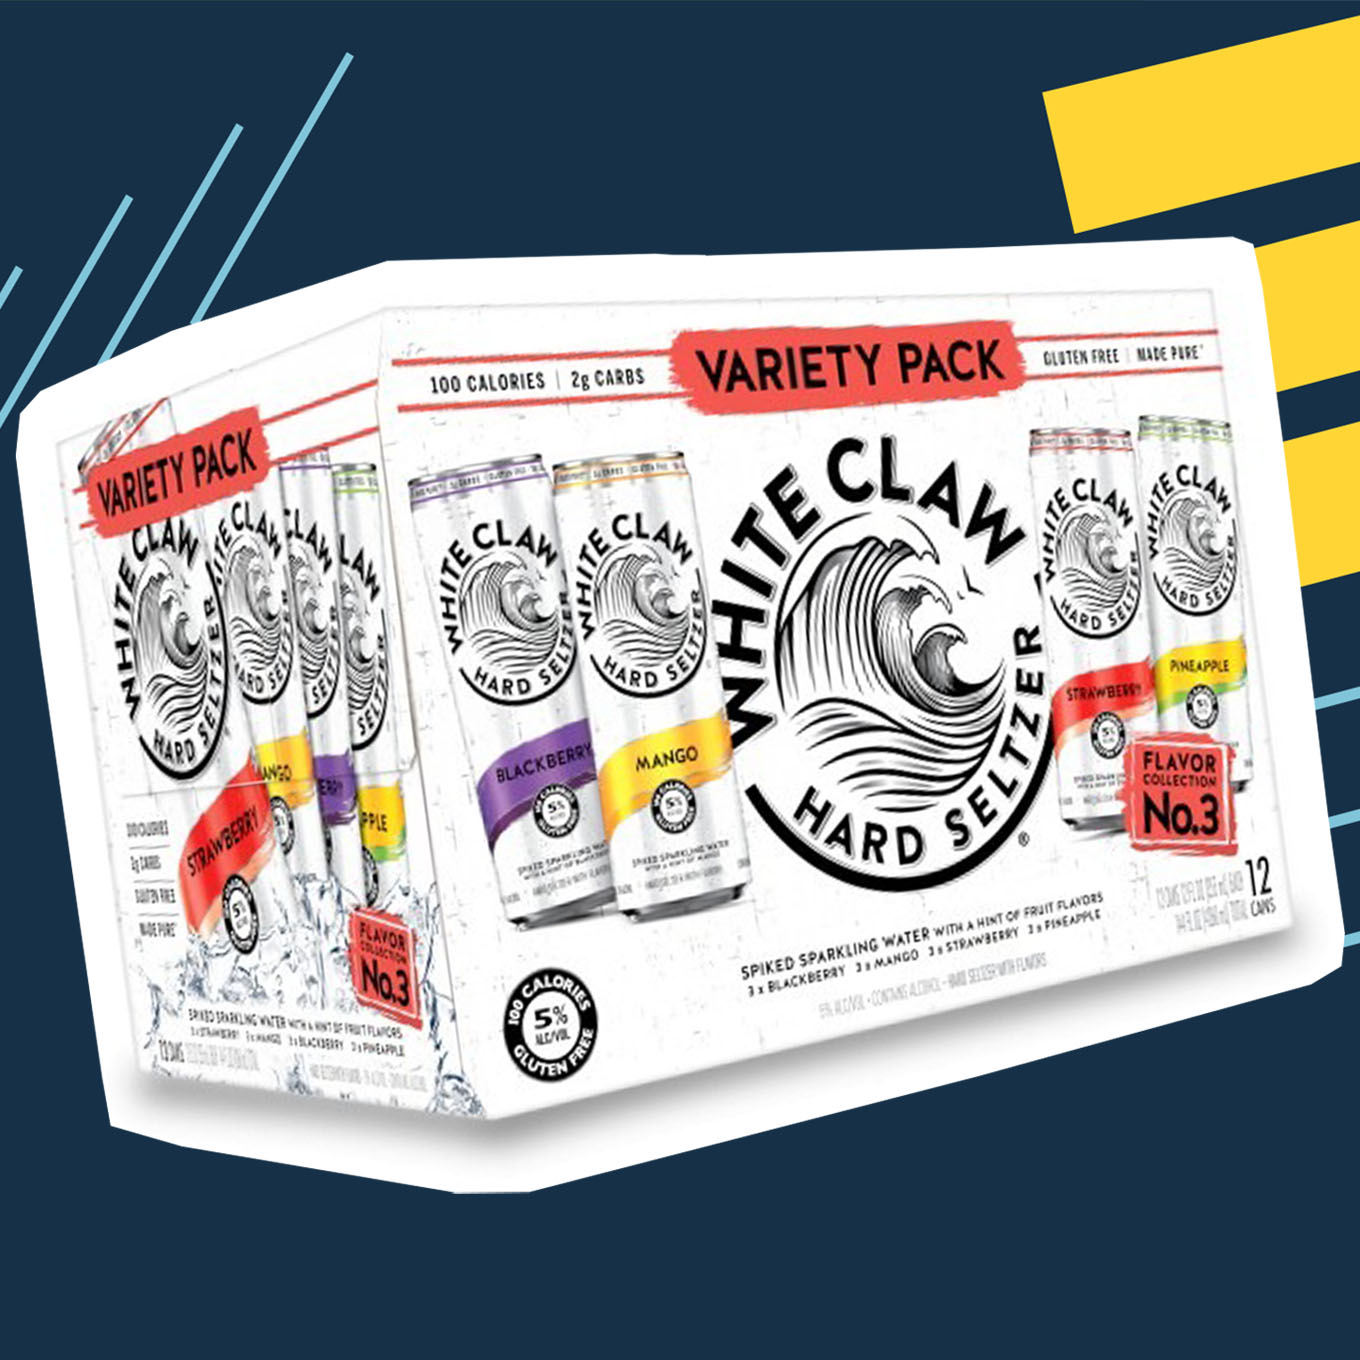 White Claw Variety Pack No. 3